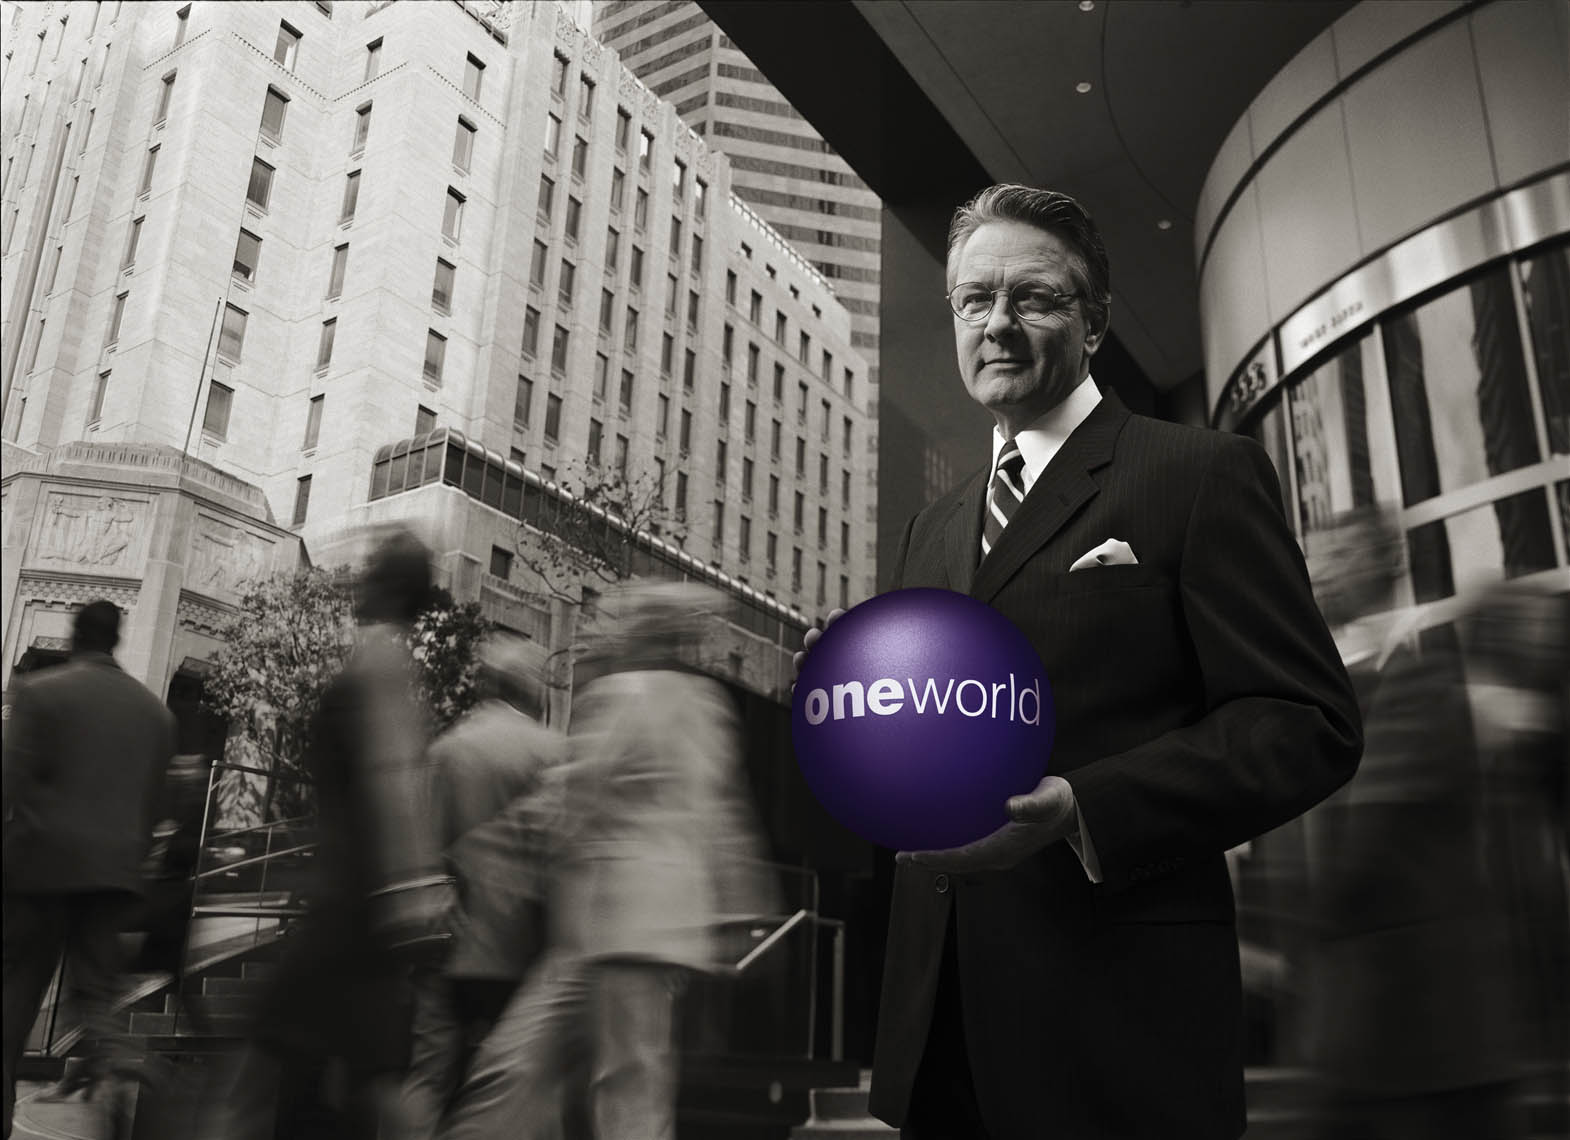 OneWorld_2-Paul